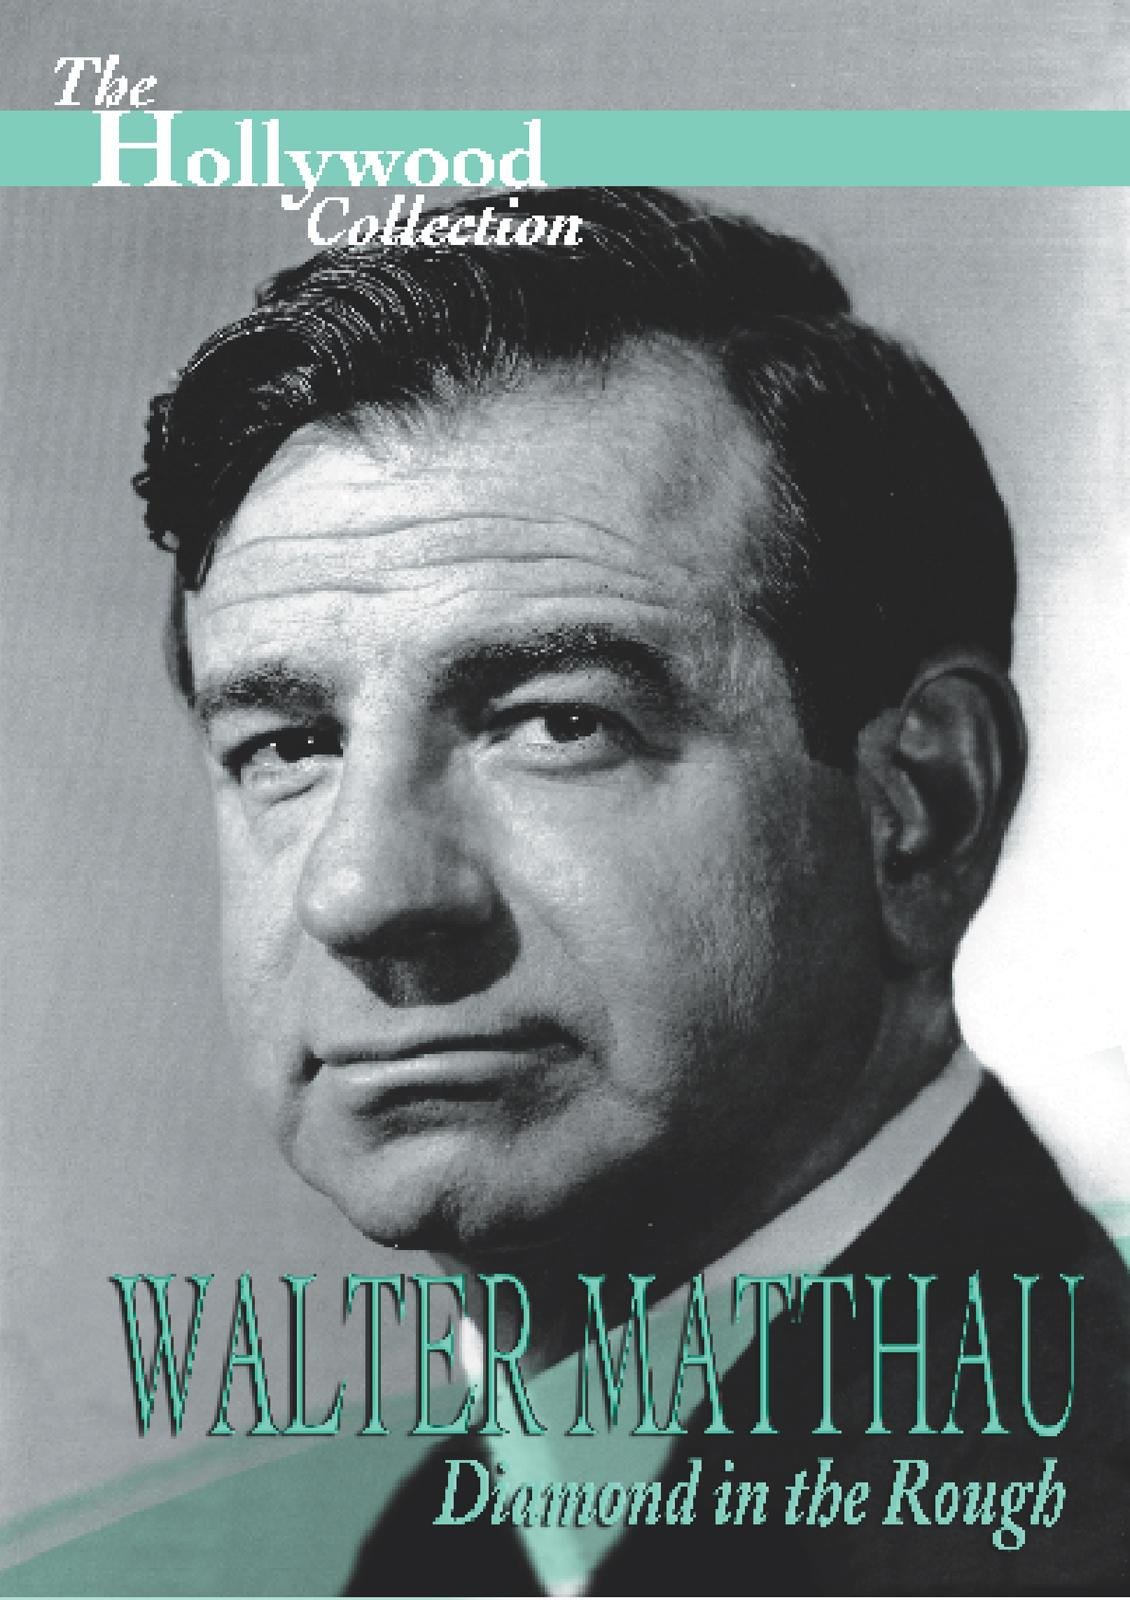 The Hollywood Collection: Walter Matthau Diamond in the Rough